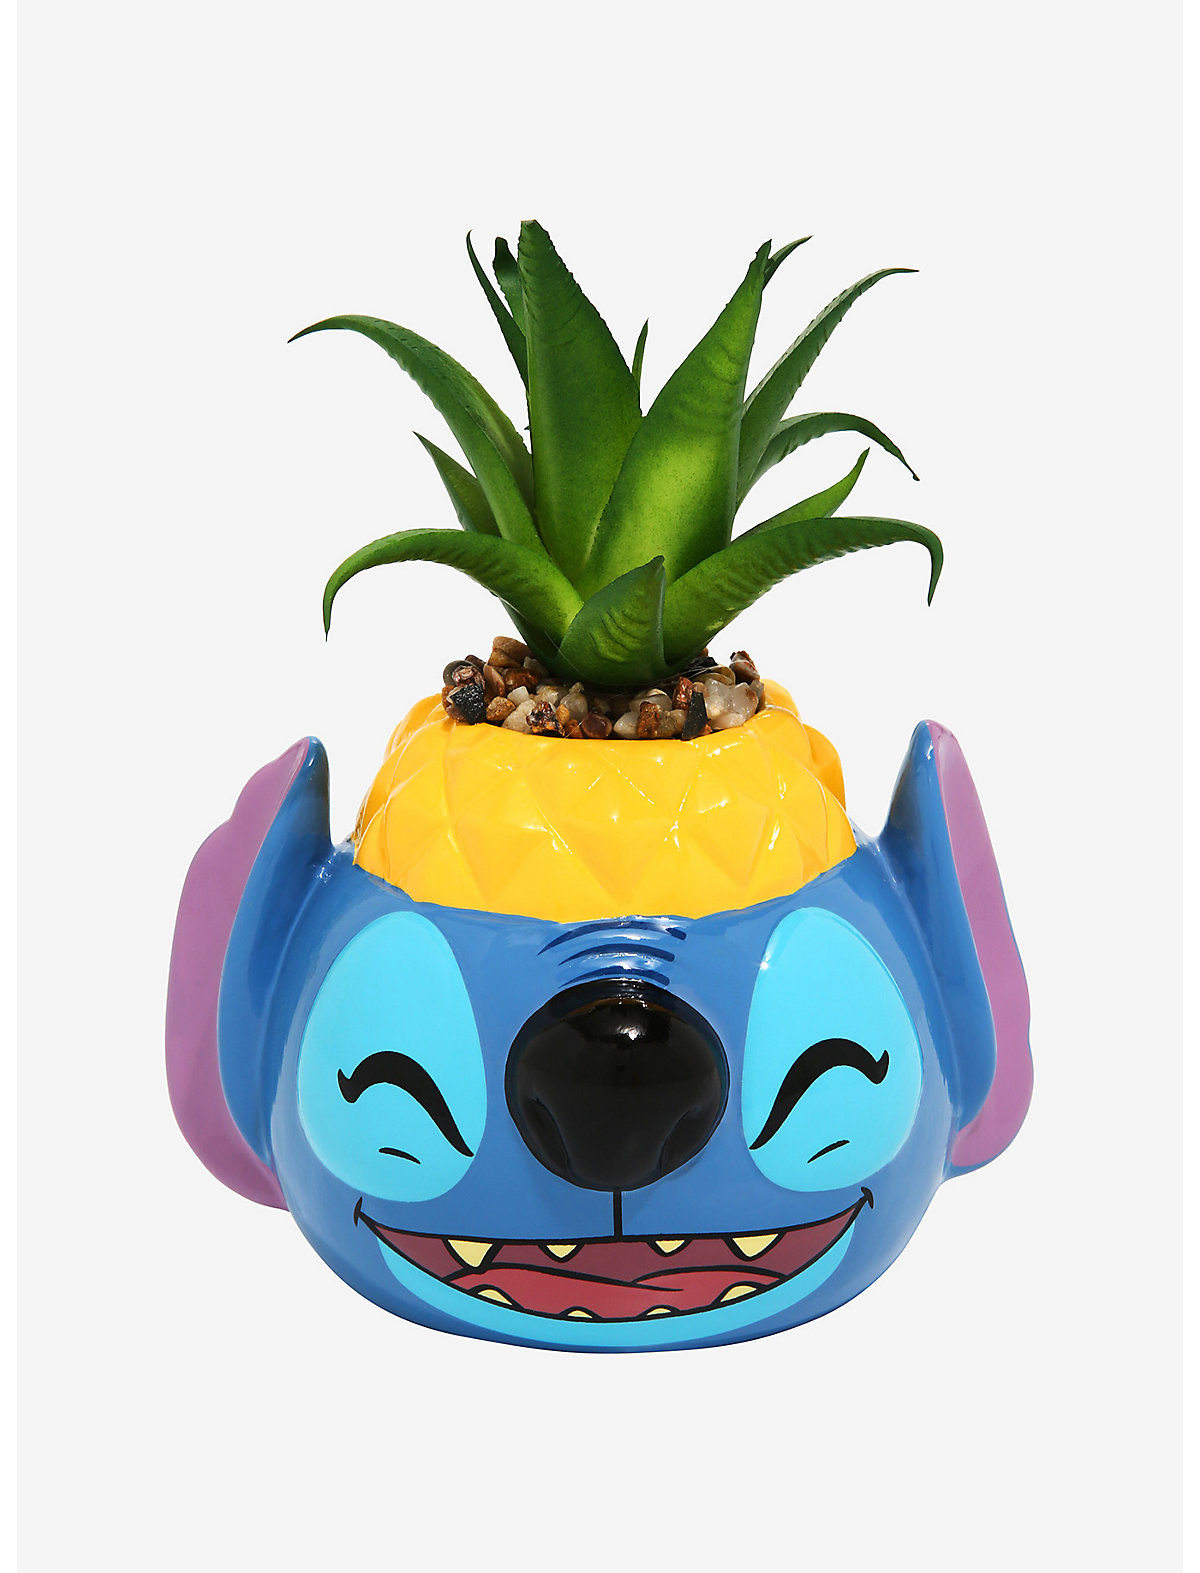 a smiling stitch planter with a pineapple at the top and a little sprout coming out of it